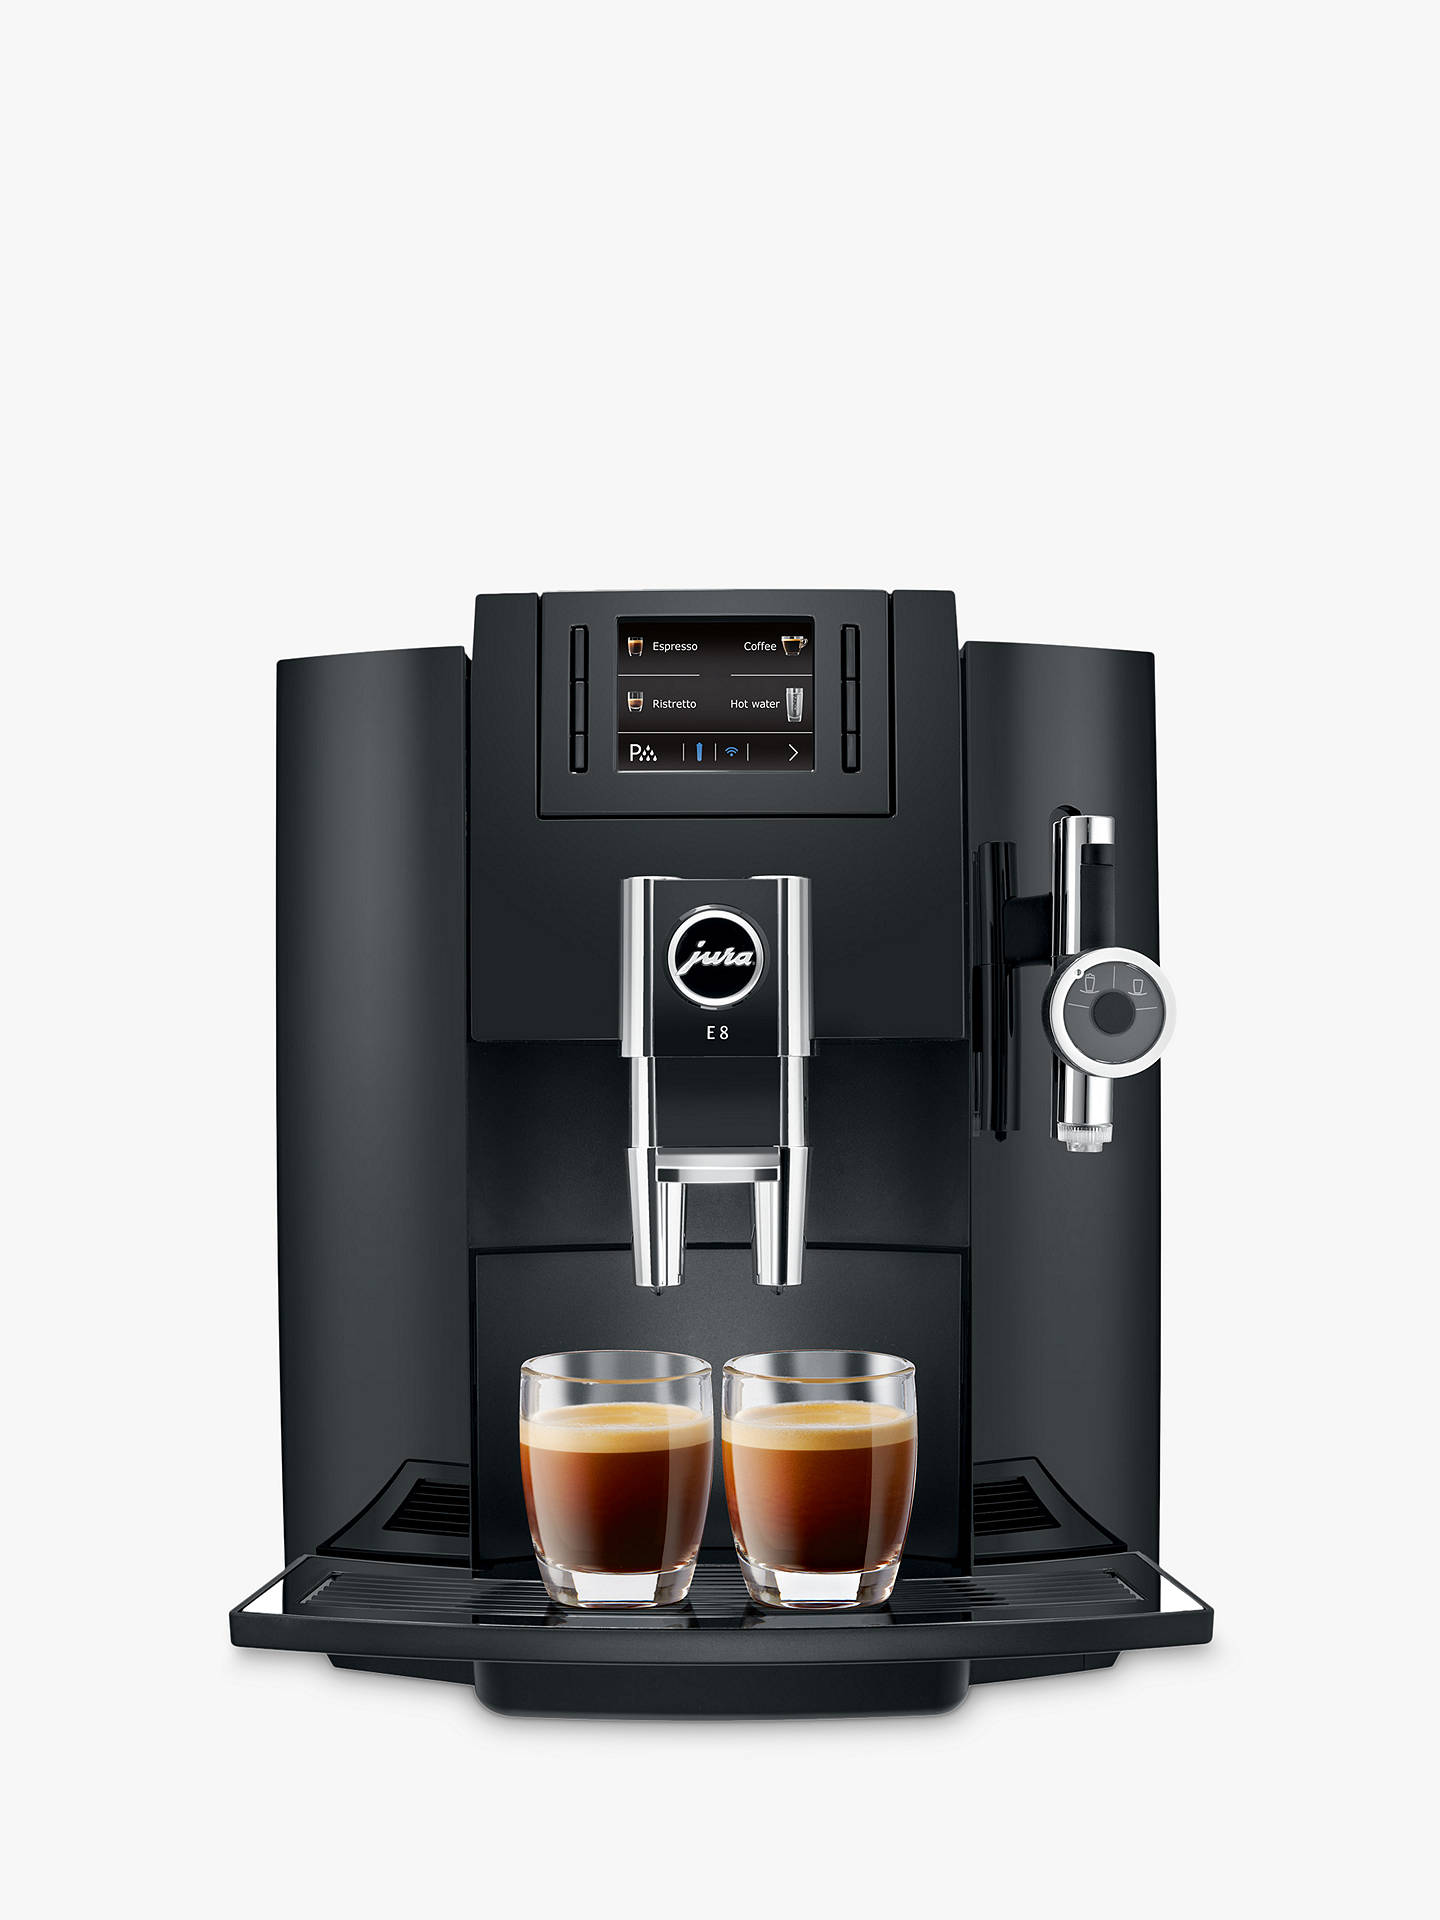 BuyJura E8 Bean-to-Cup Automatic Coffee Machine, Black Online at johnlewis.com